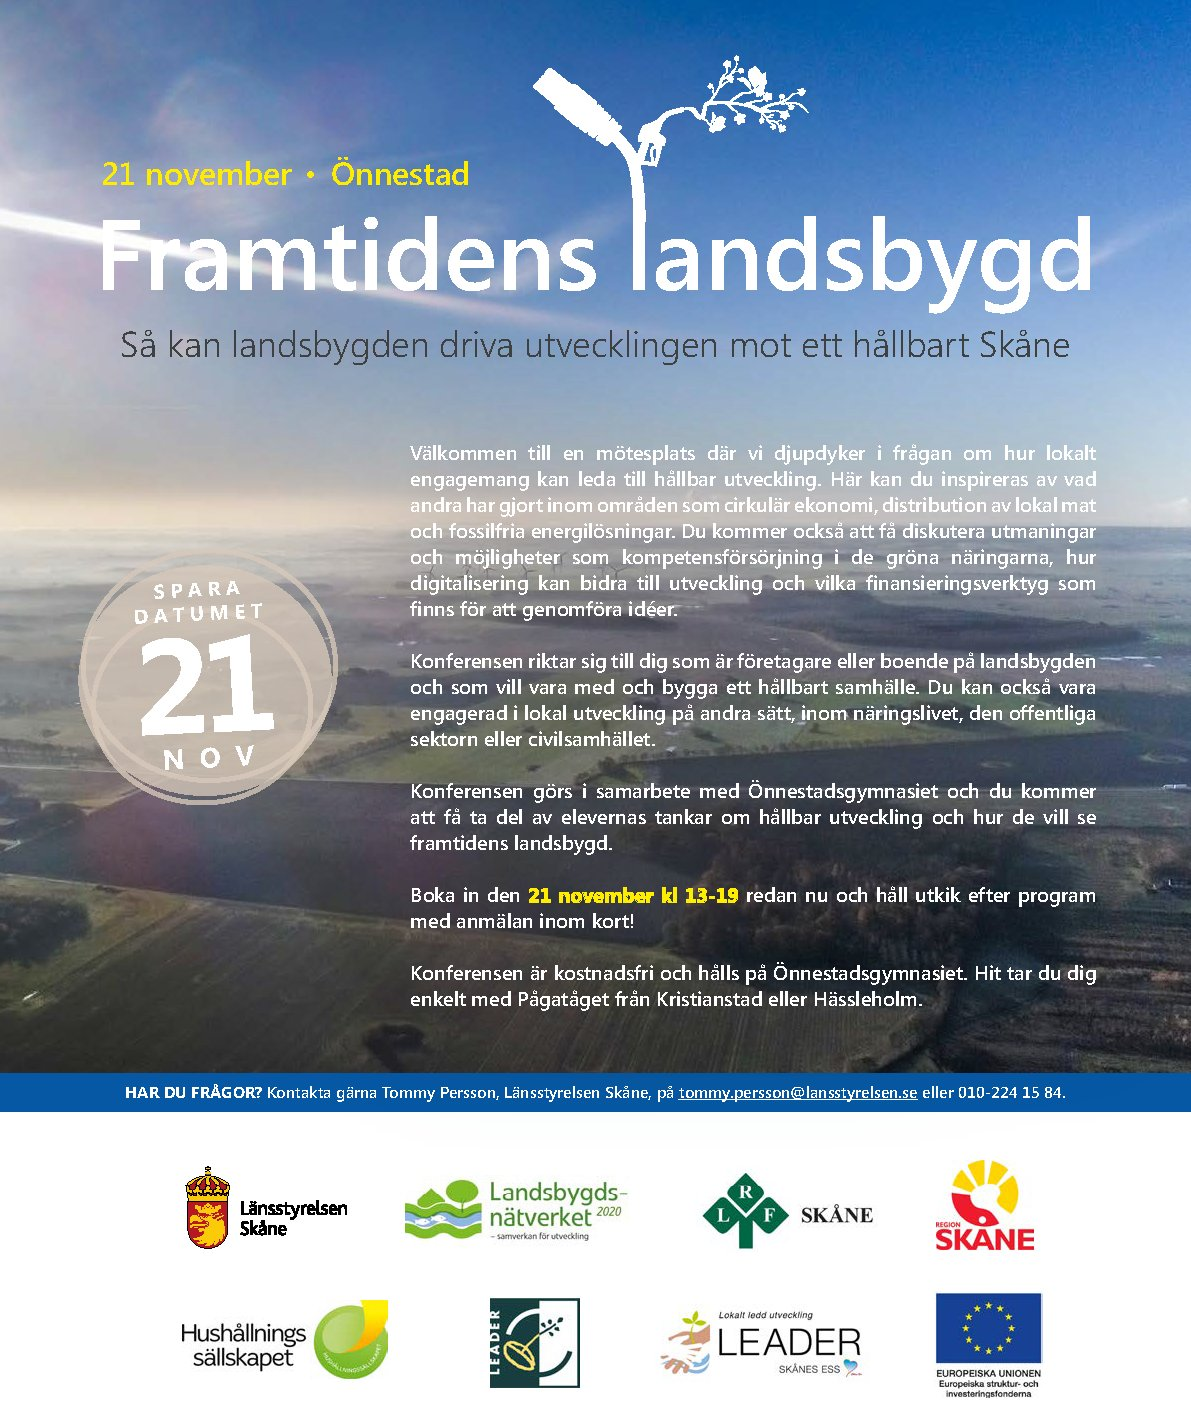 Miljml Lst Skne on Twitter: Save the date! 21 november